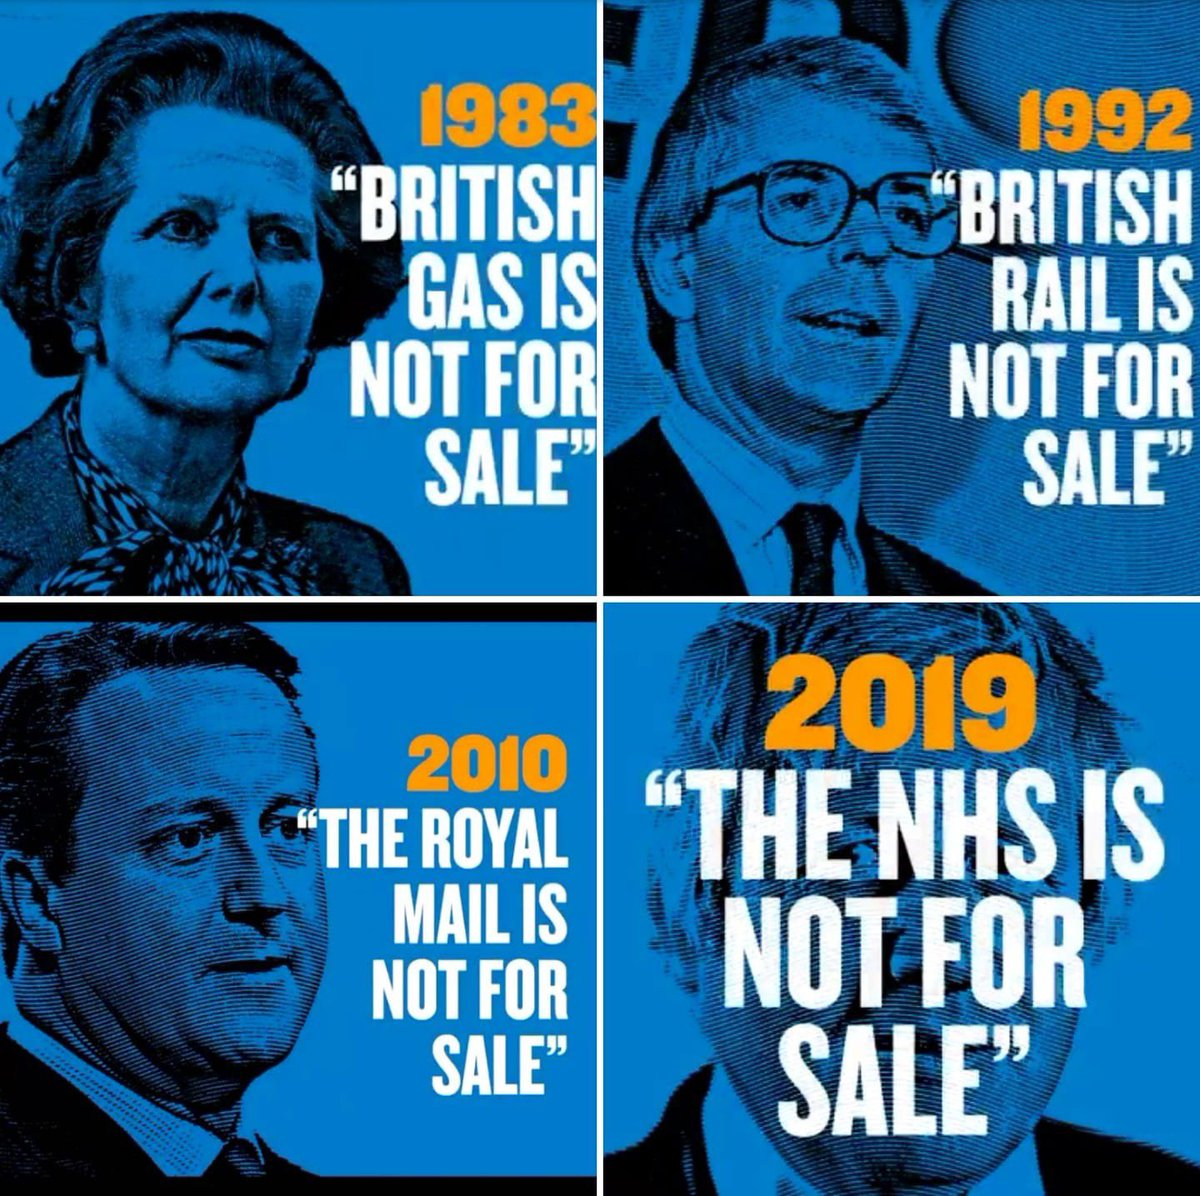 'And the band played on...' cc: .@BorisJohnson #NHSNotForSale #ToryLies